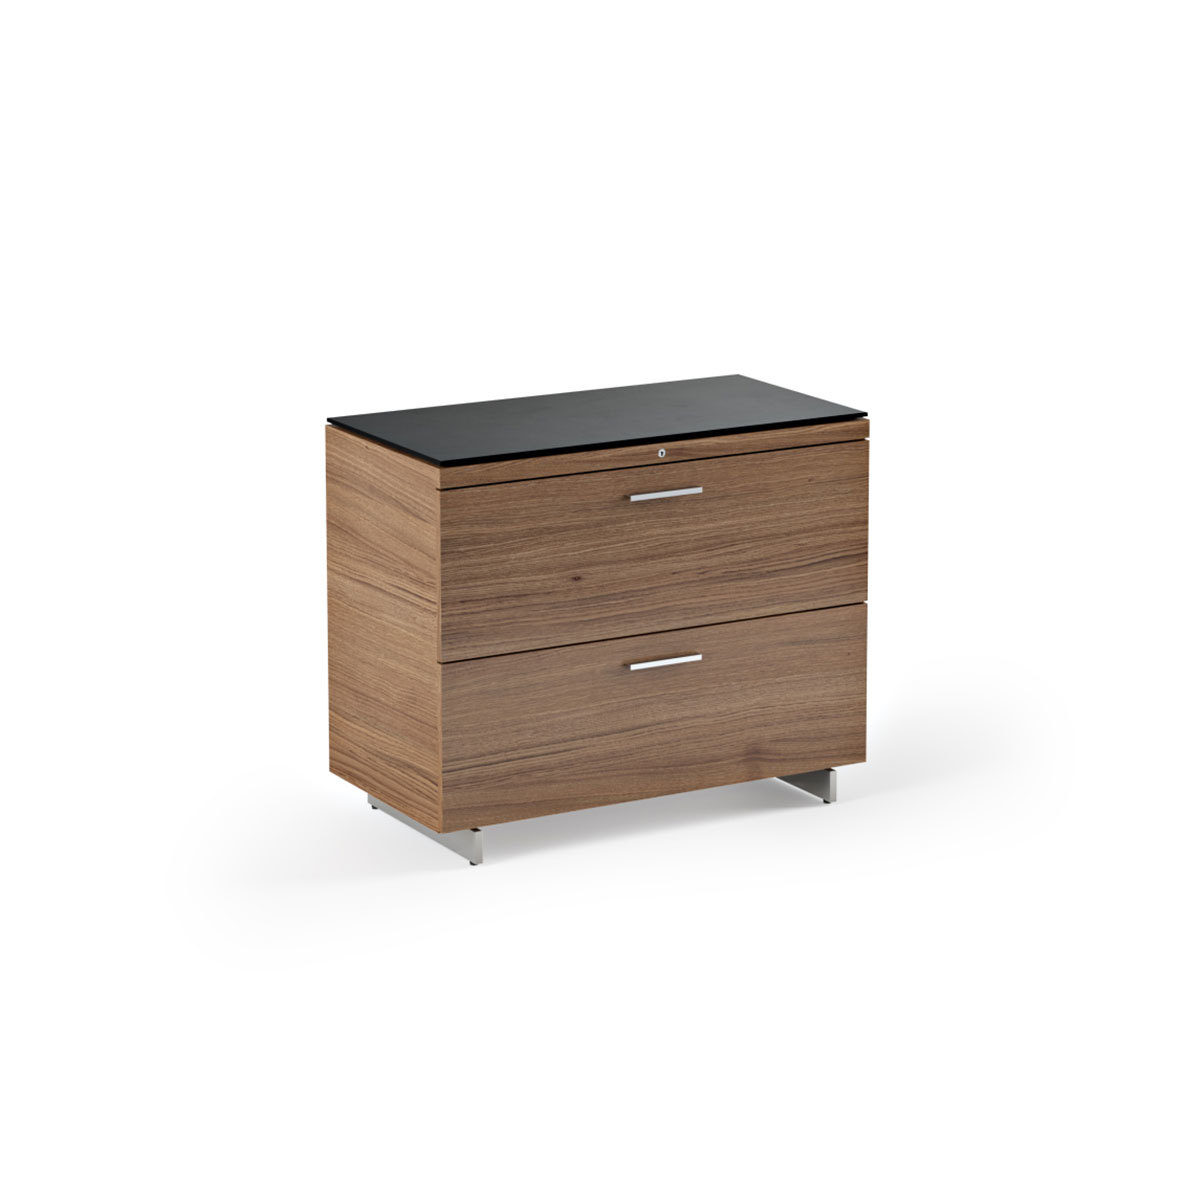 Delicieux ... About Finishes. The Sequel Lateral File Cabinet In Chocolate Walnut ...